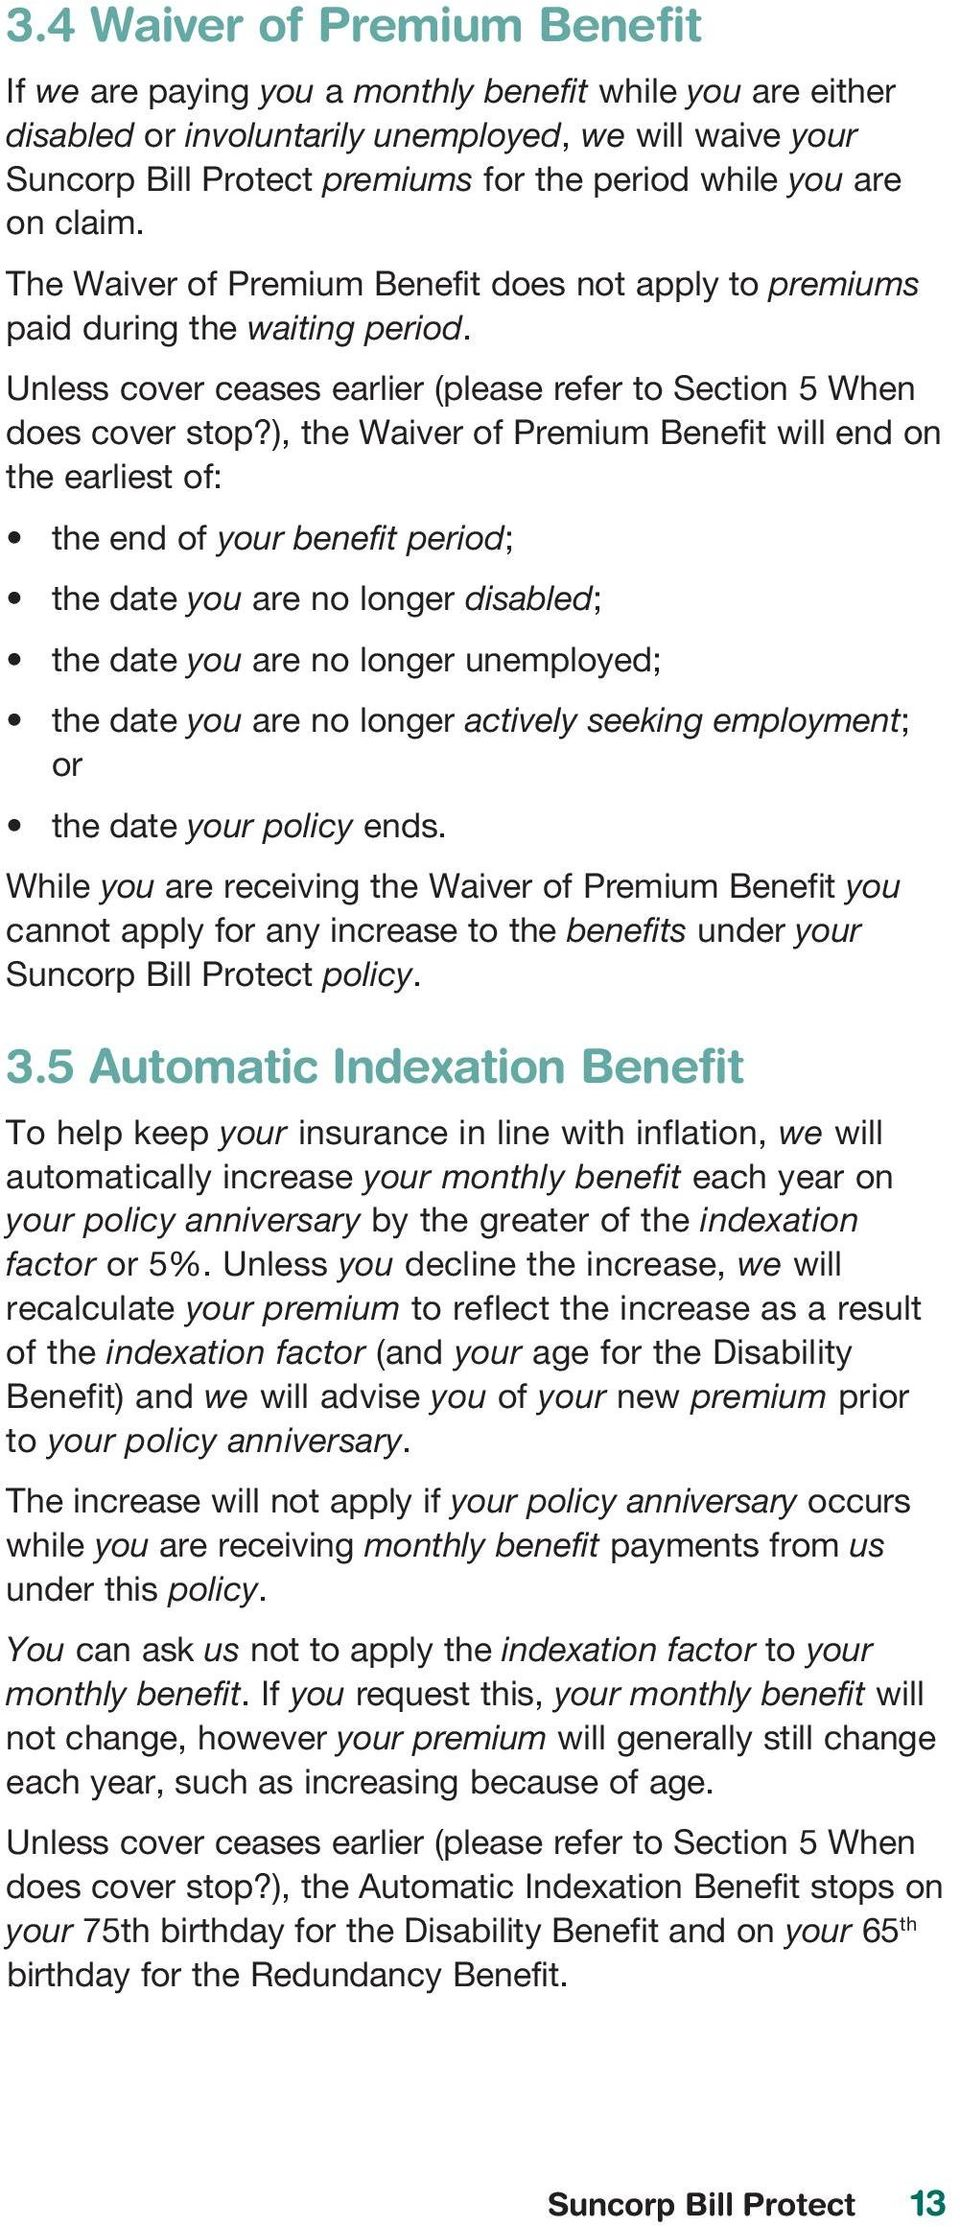 ), the Waiver of Premium Benefit will end on the earliest of: the end of your benefit period; the date you are no longer disabled; the date you are no longer unemployed; the date you are no longer